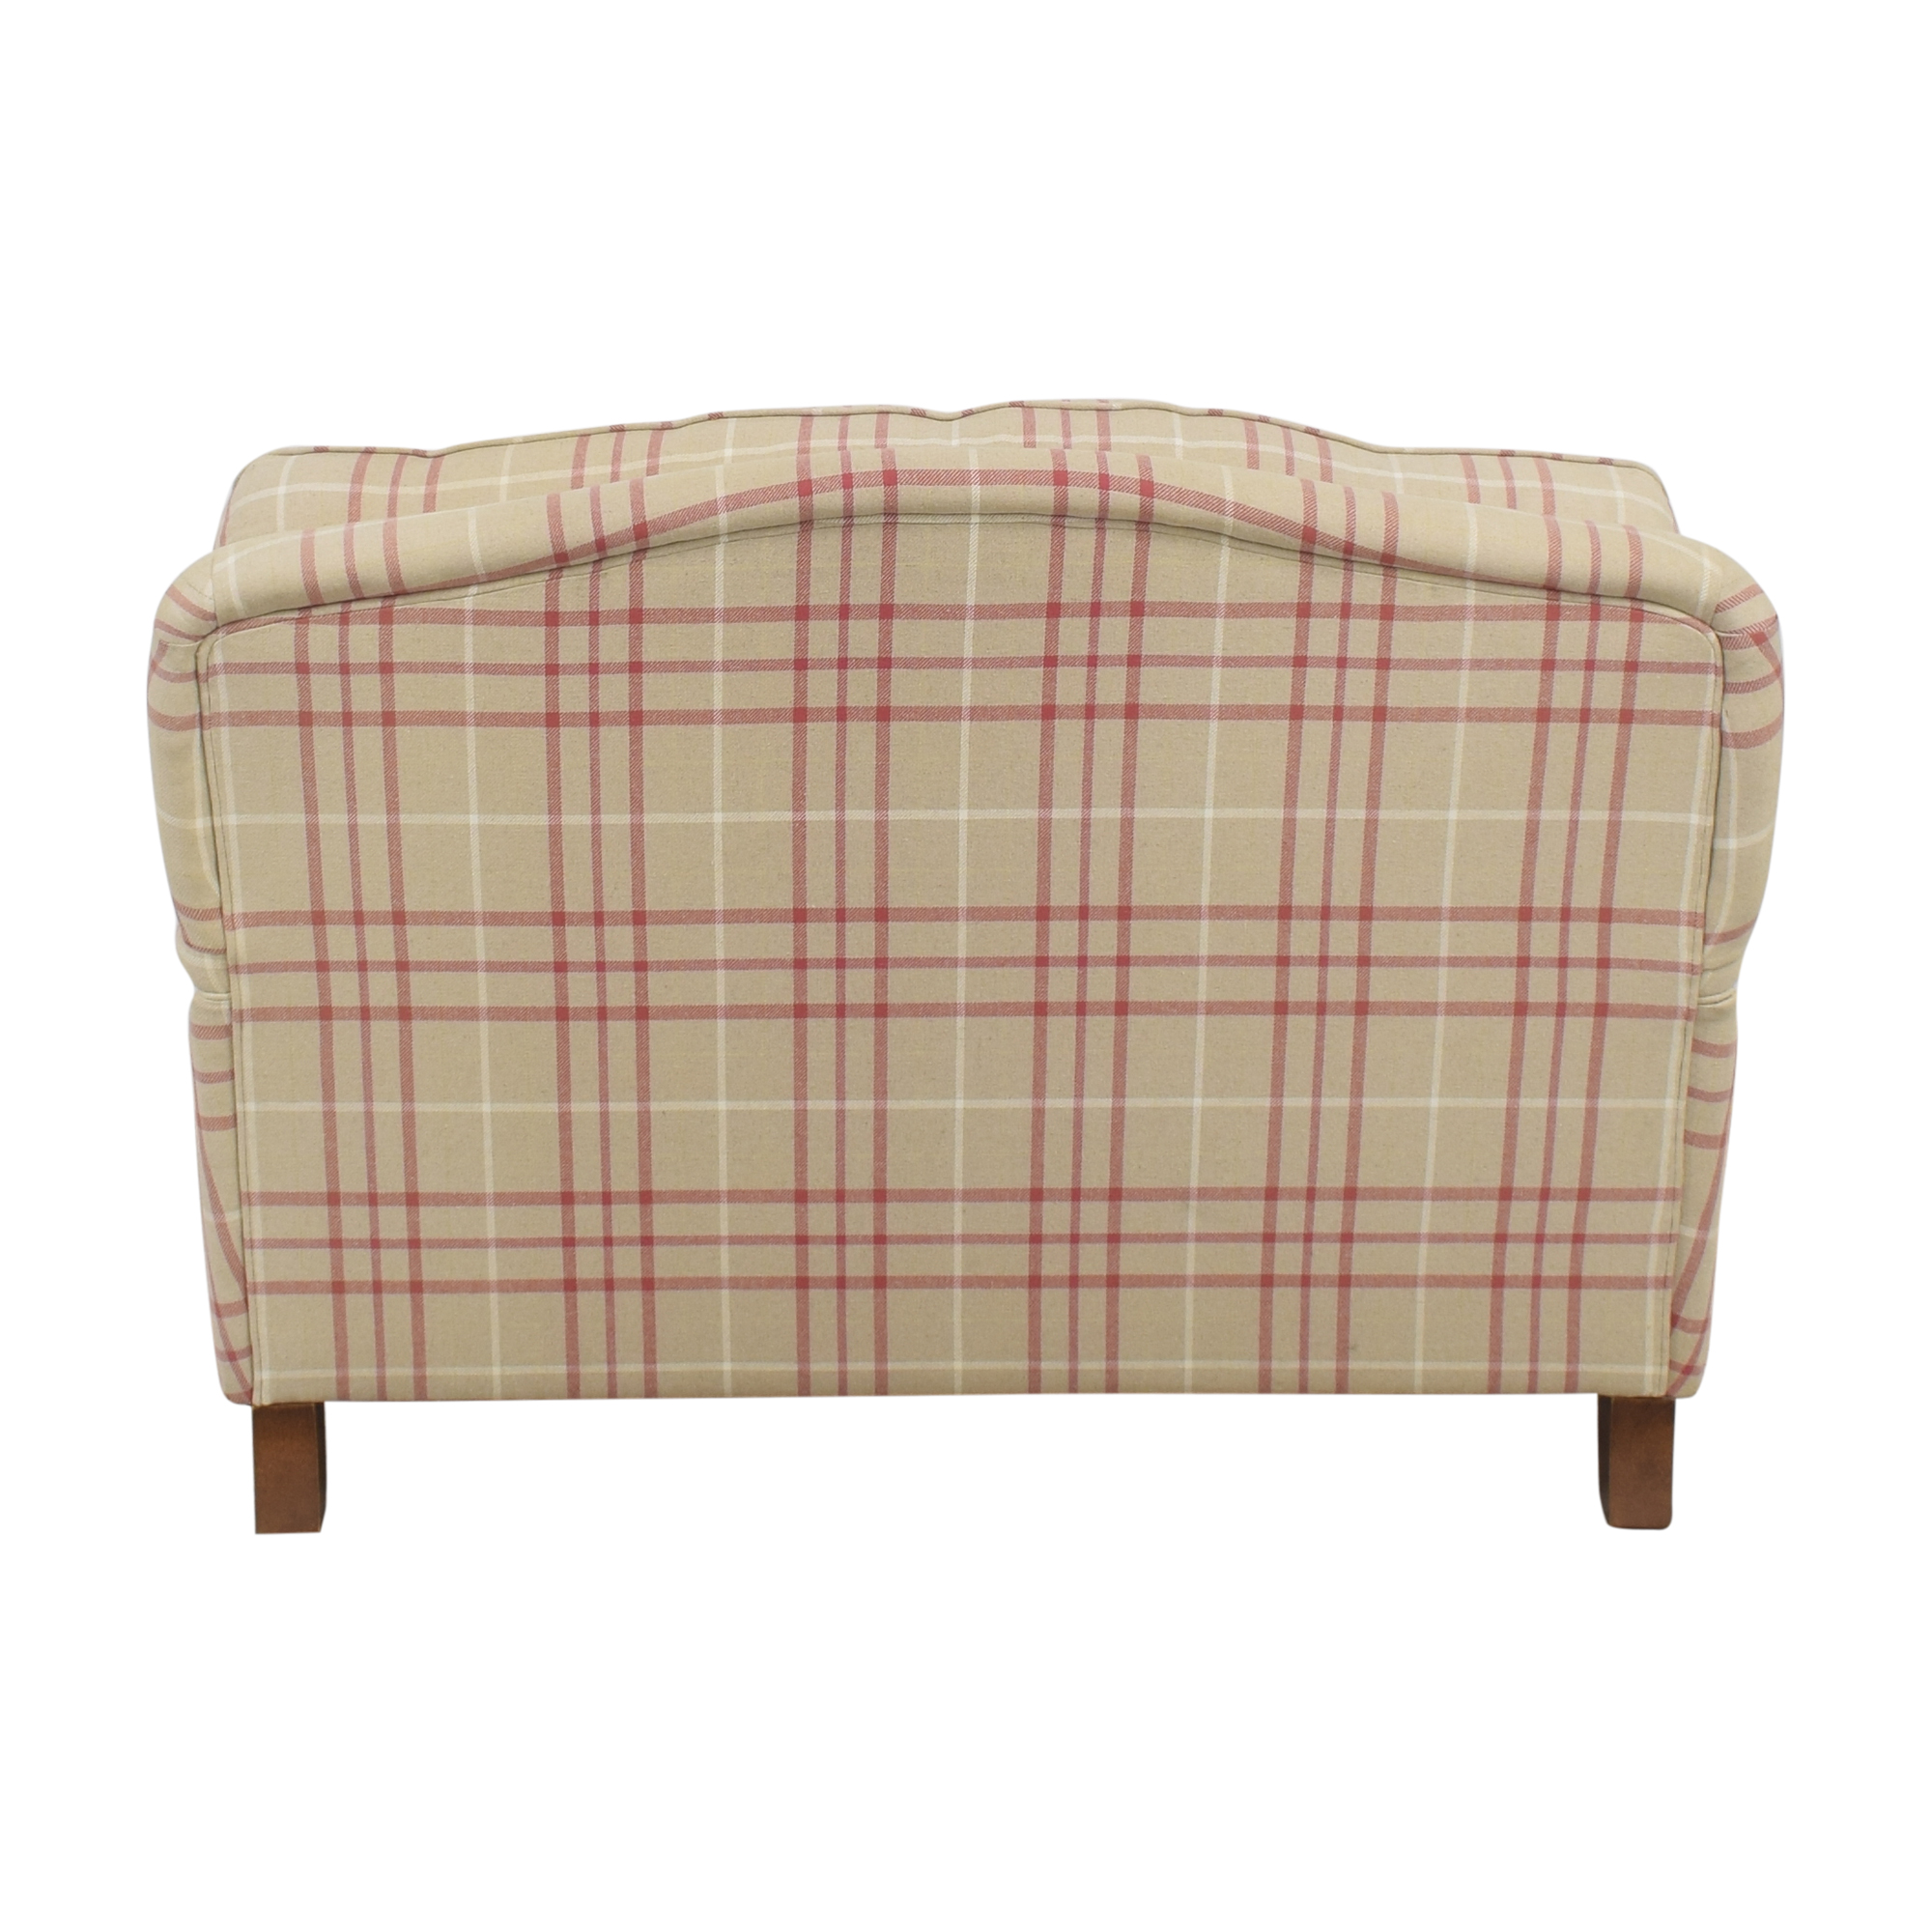 Laura Ashley Laura Ashley Lynden Snuggler Chair and a Half second hand